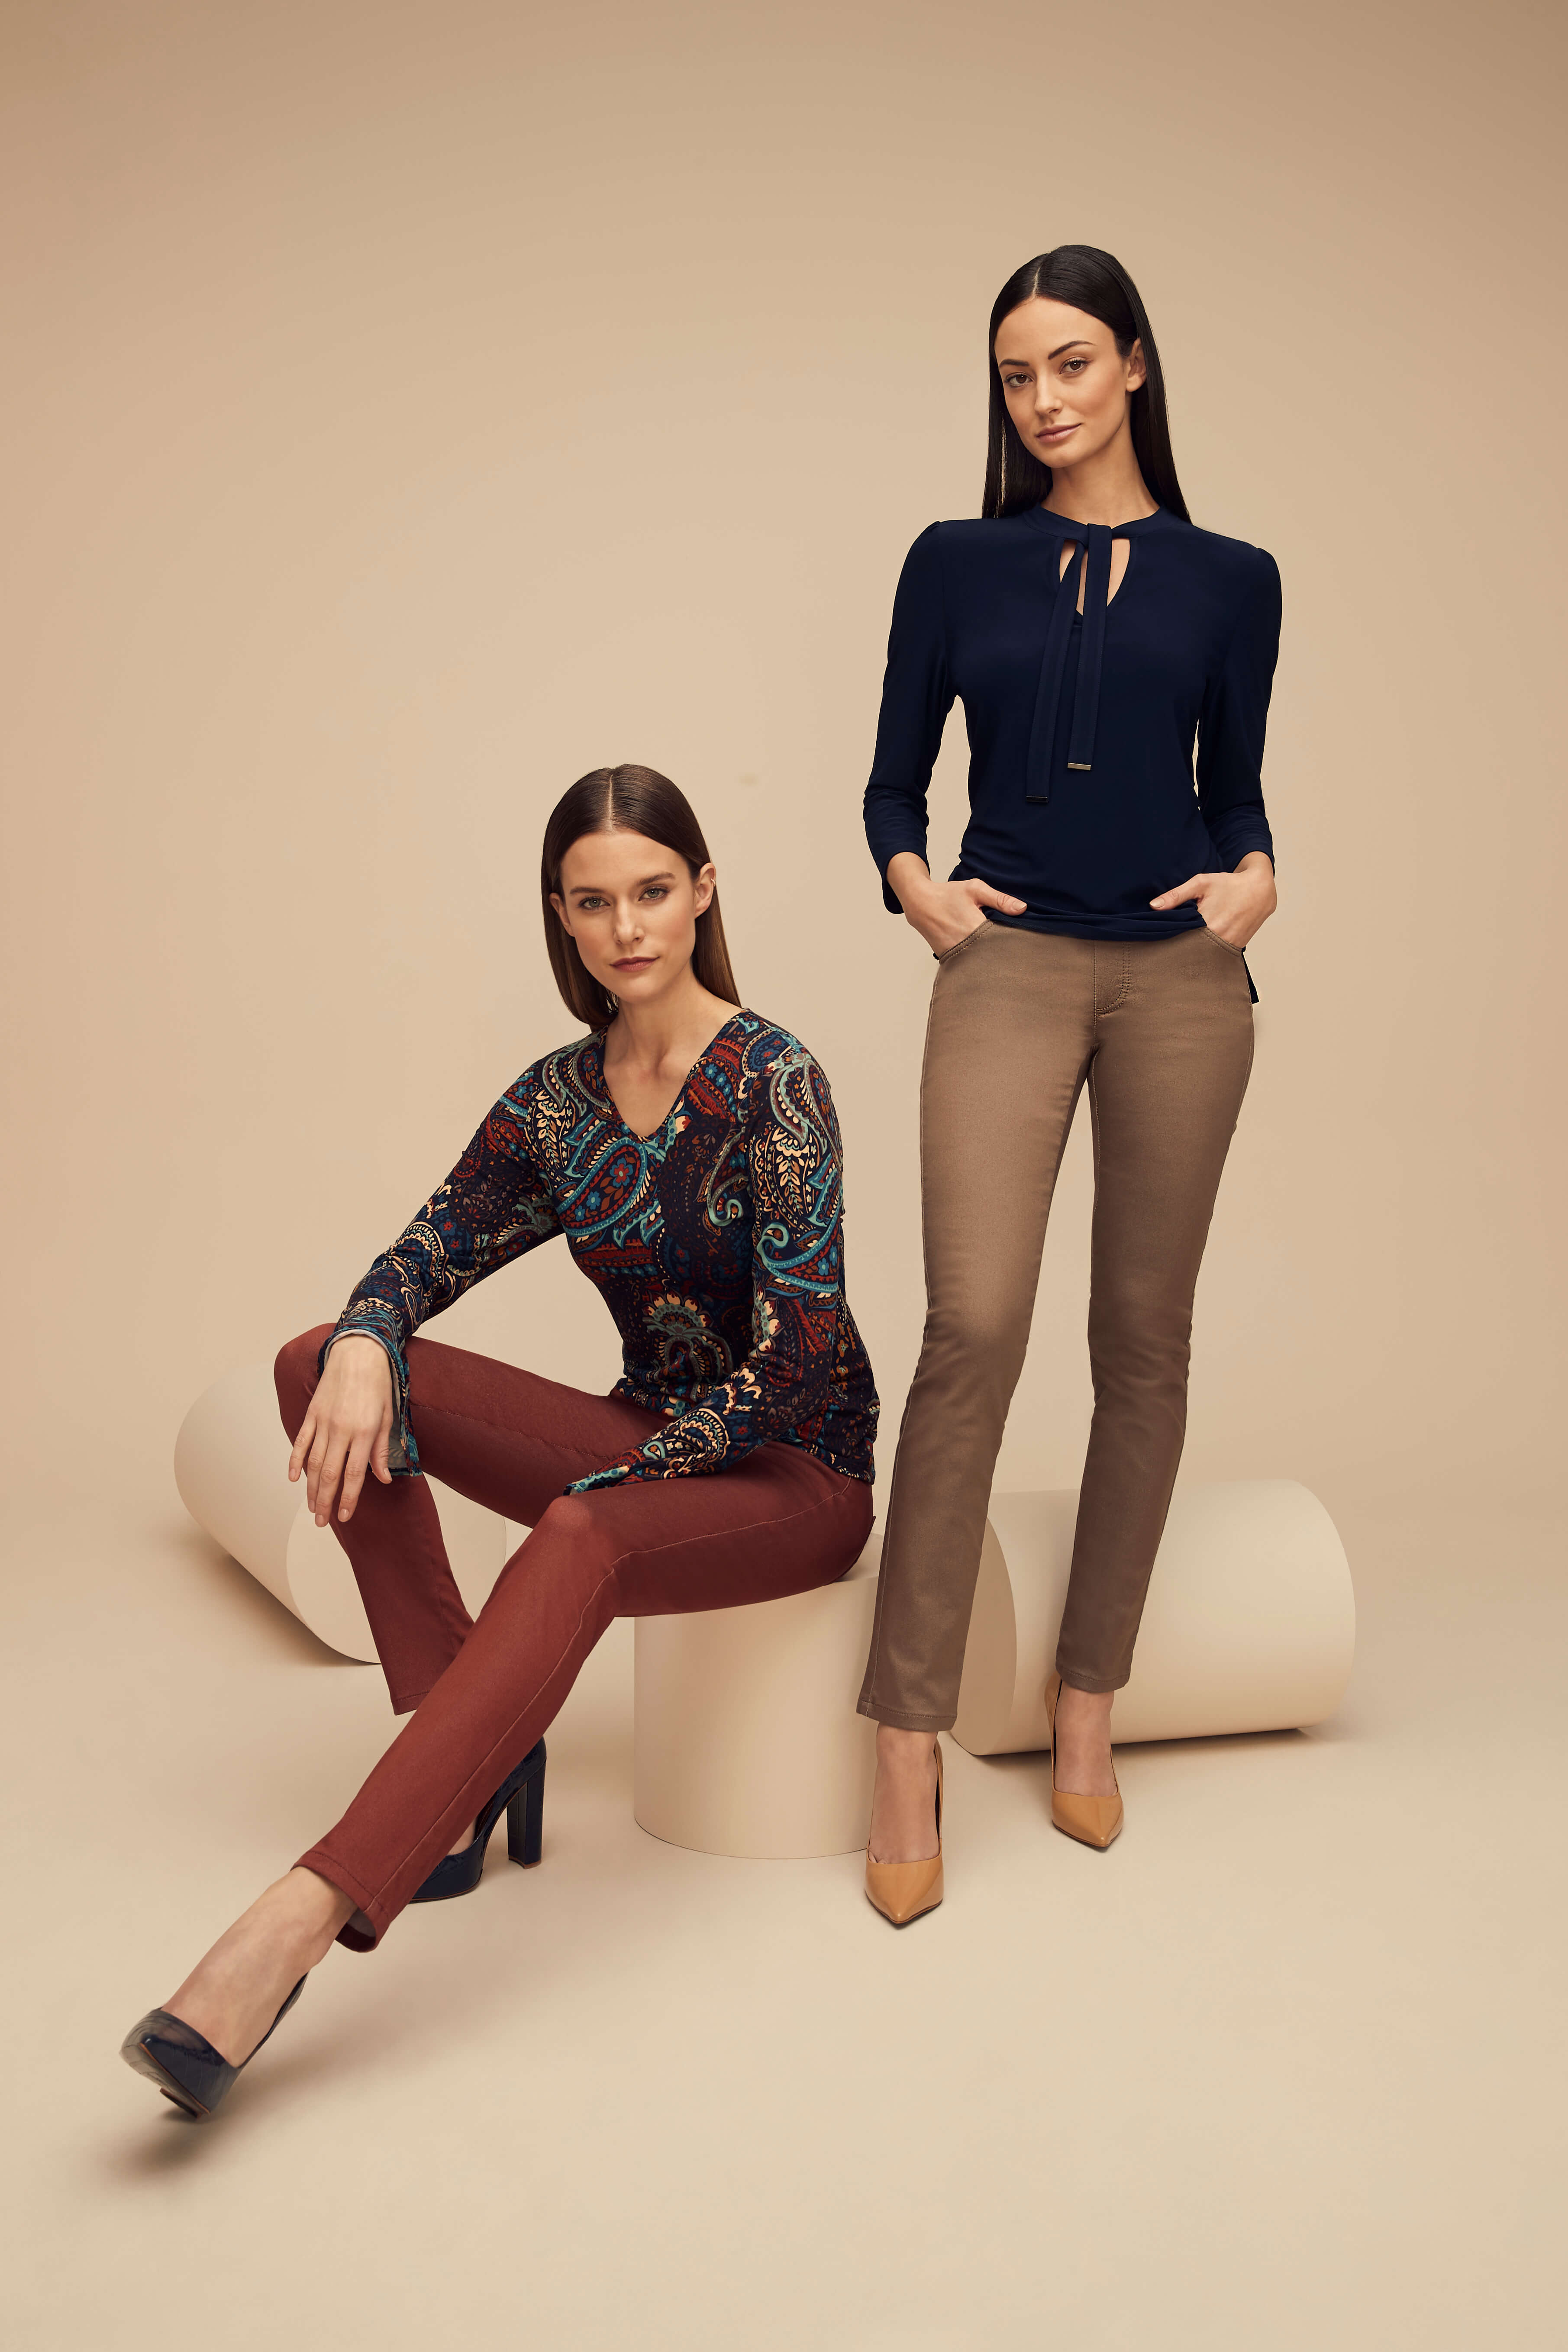 Lisette L. Skinny Jeans, Style 607930 Flattery Denim, 2 Colors Available